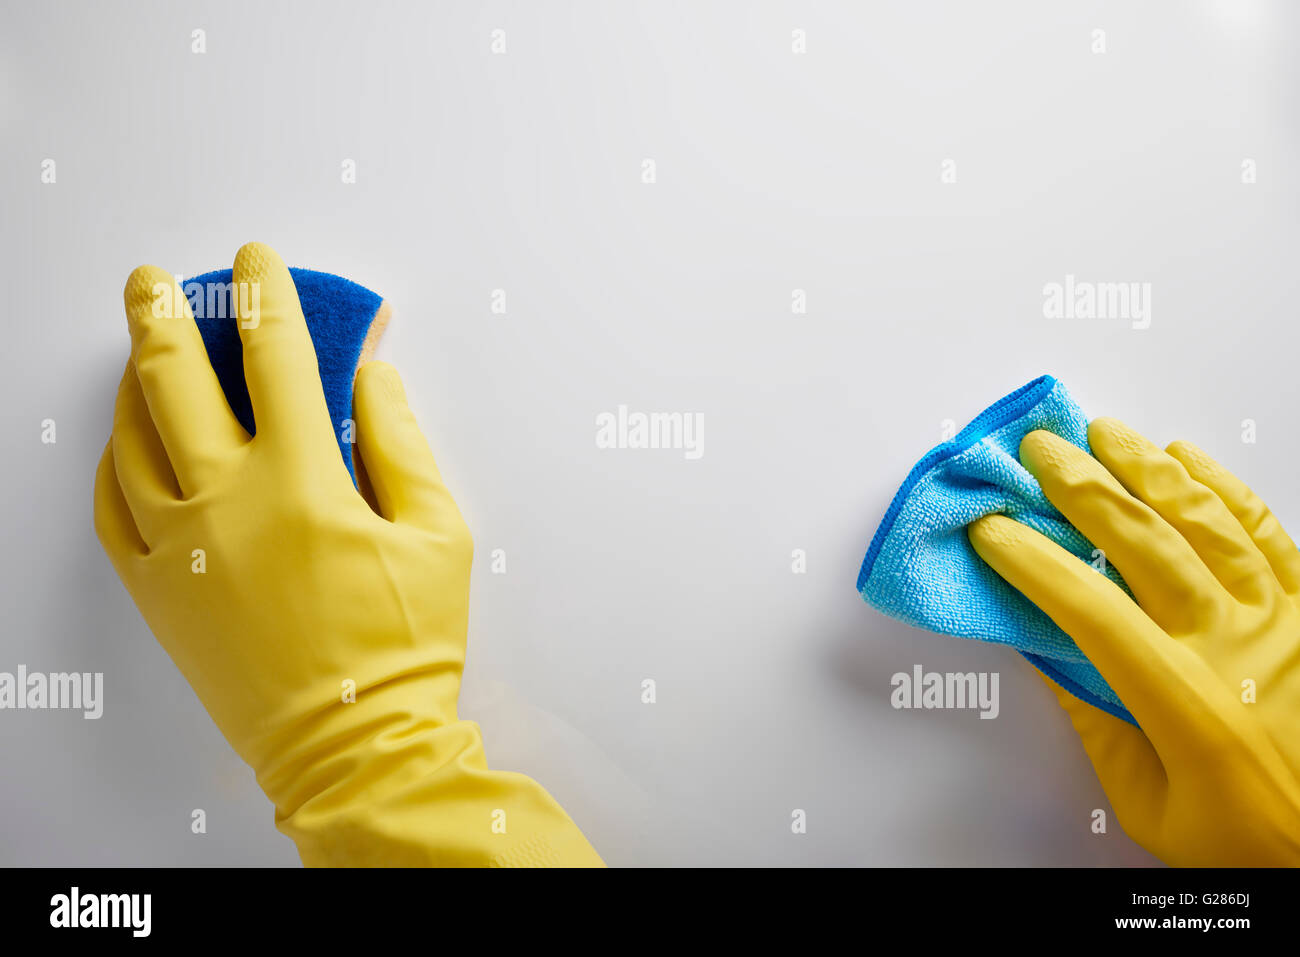 Hands of cleaning staff with rag and scourer working on white table. Top view. Horizontal composition. - Stock Image